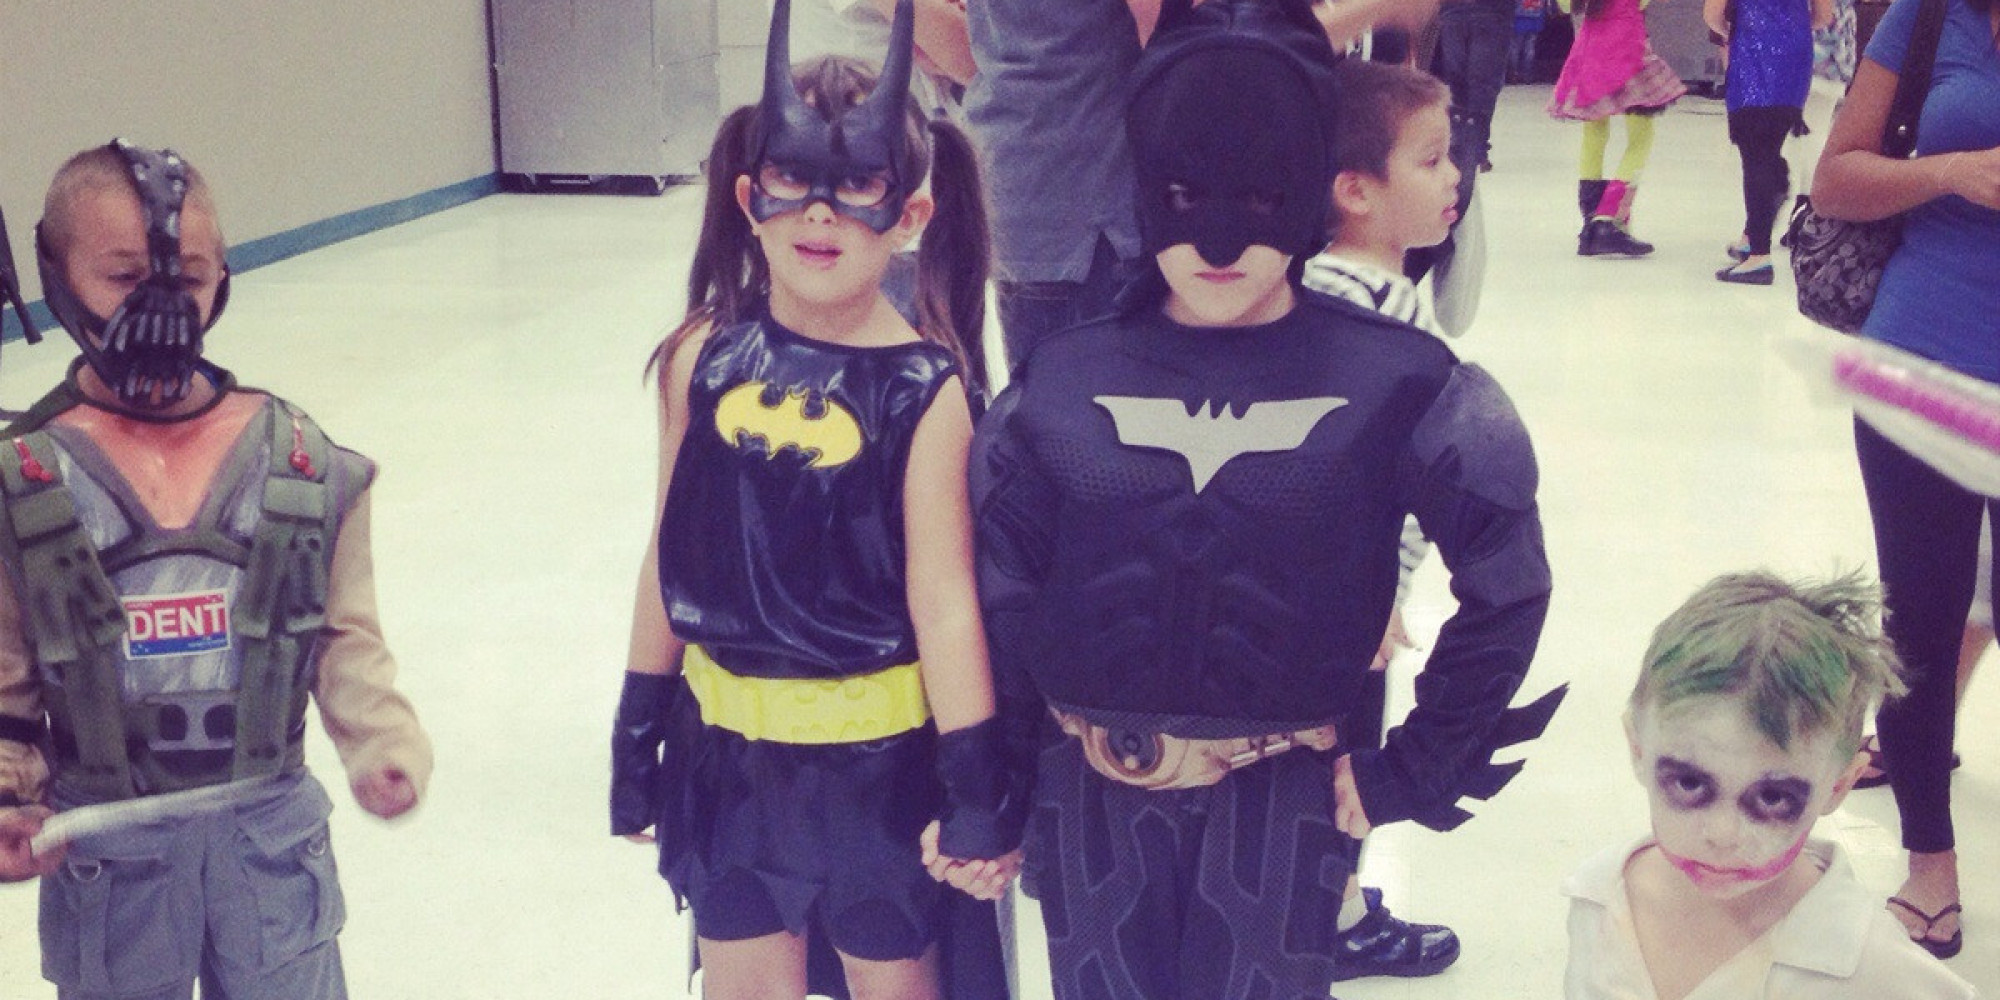 Batman and batgirl dating after divorce. 100 escovadas antes de dormir online dating.